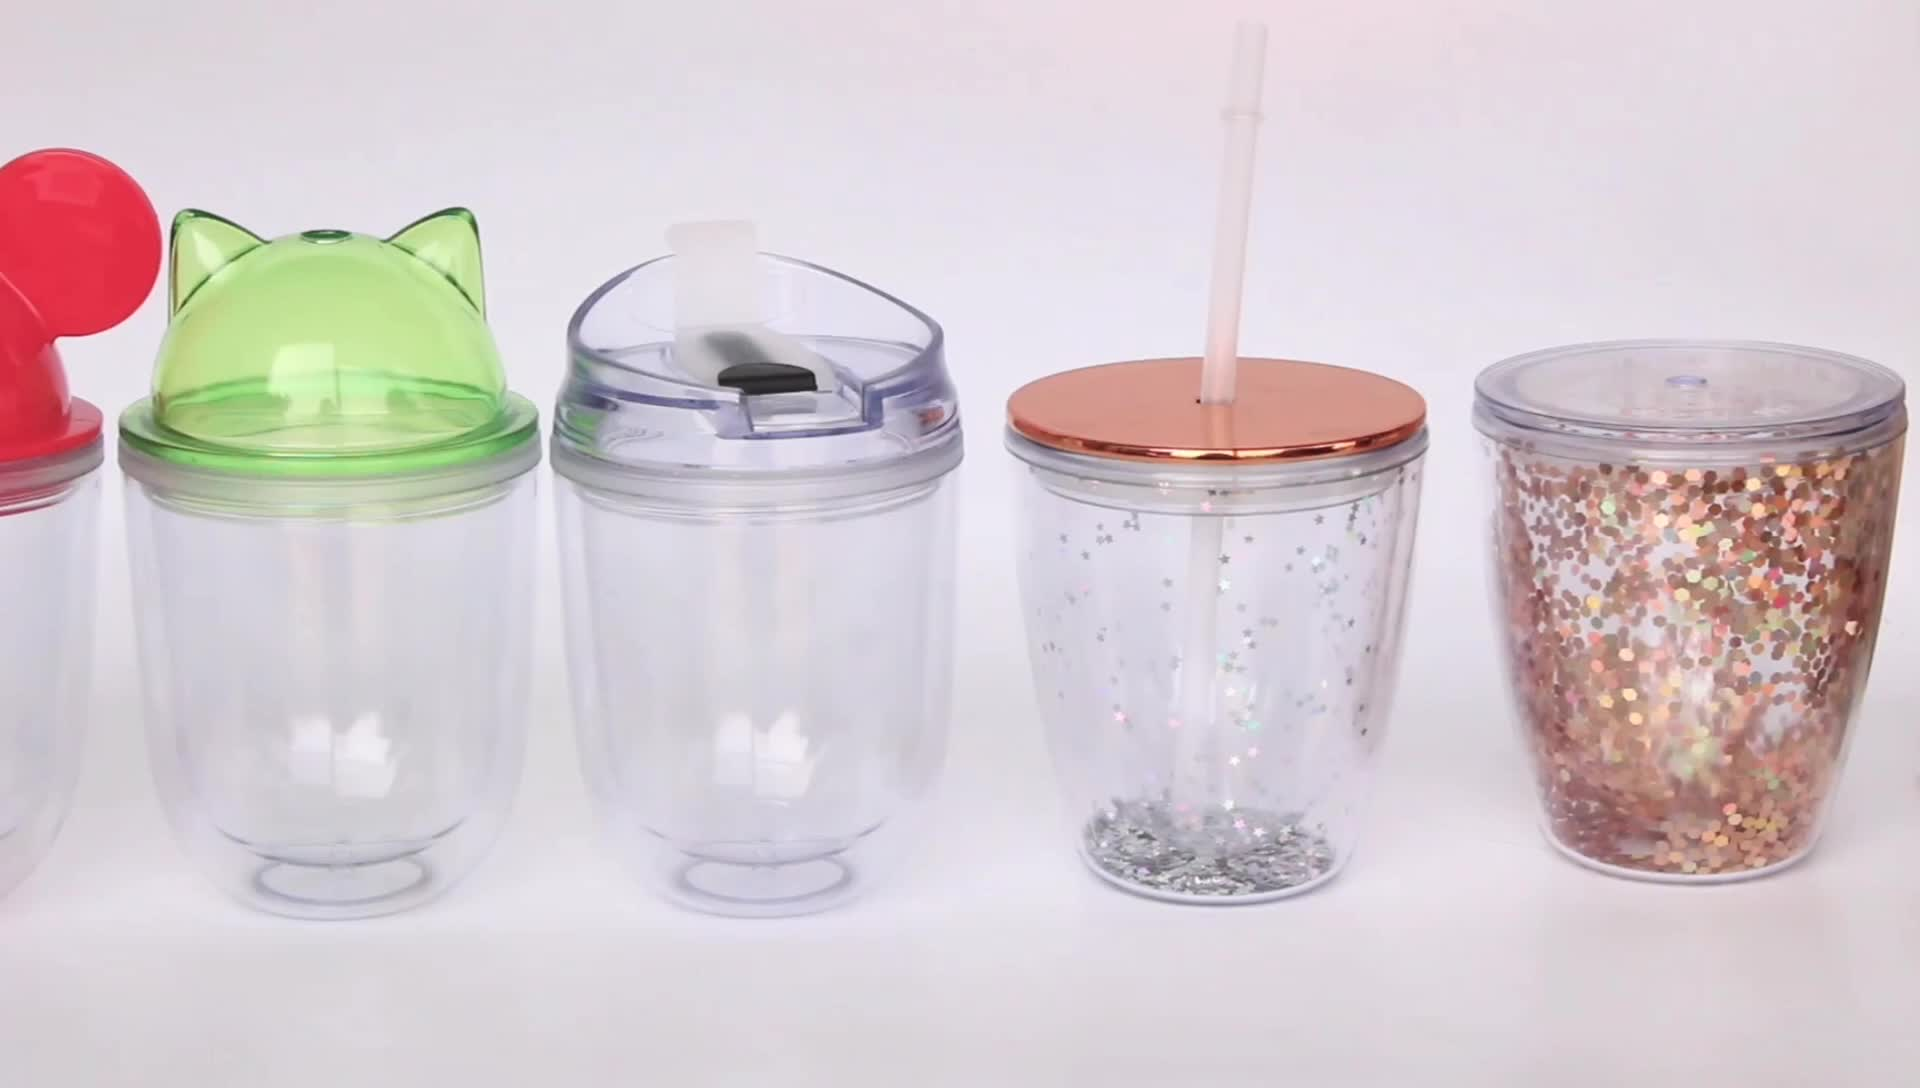 Plastic ice cup with gel insert for gift drinking